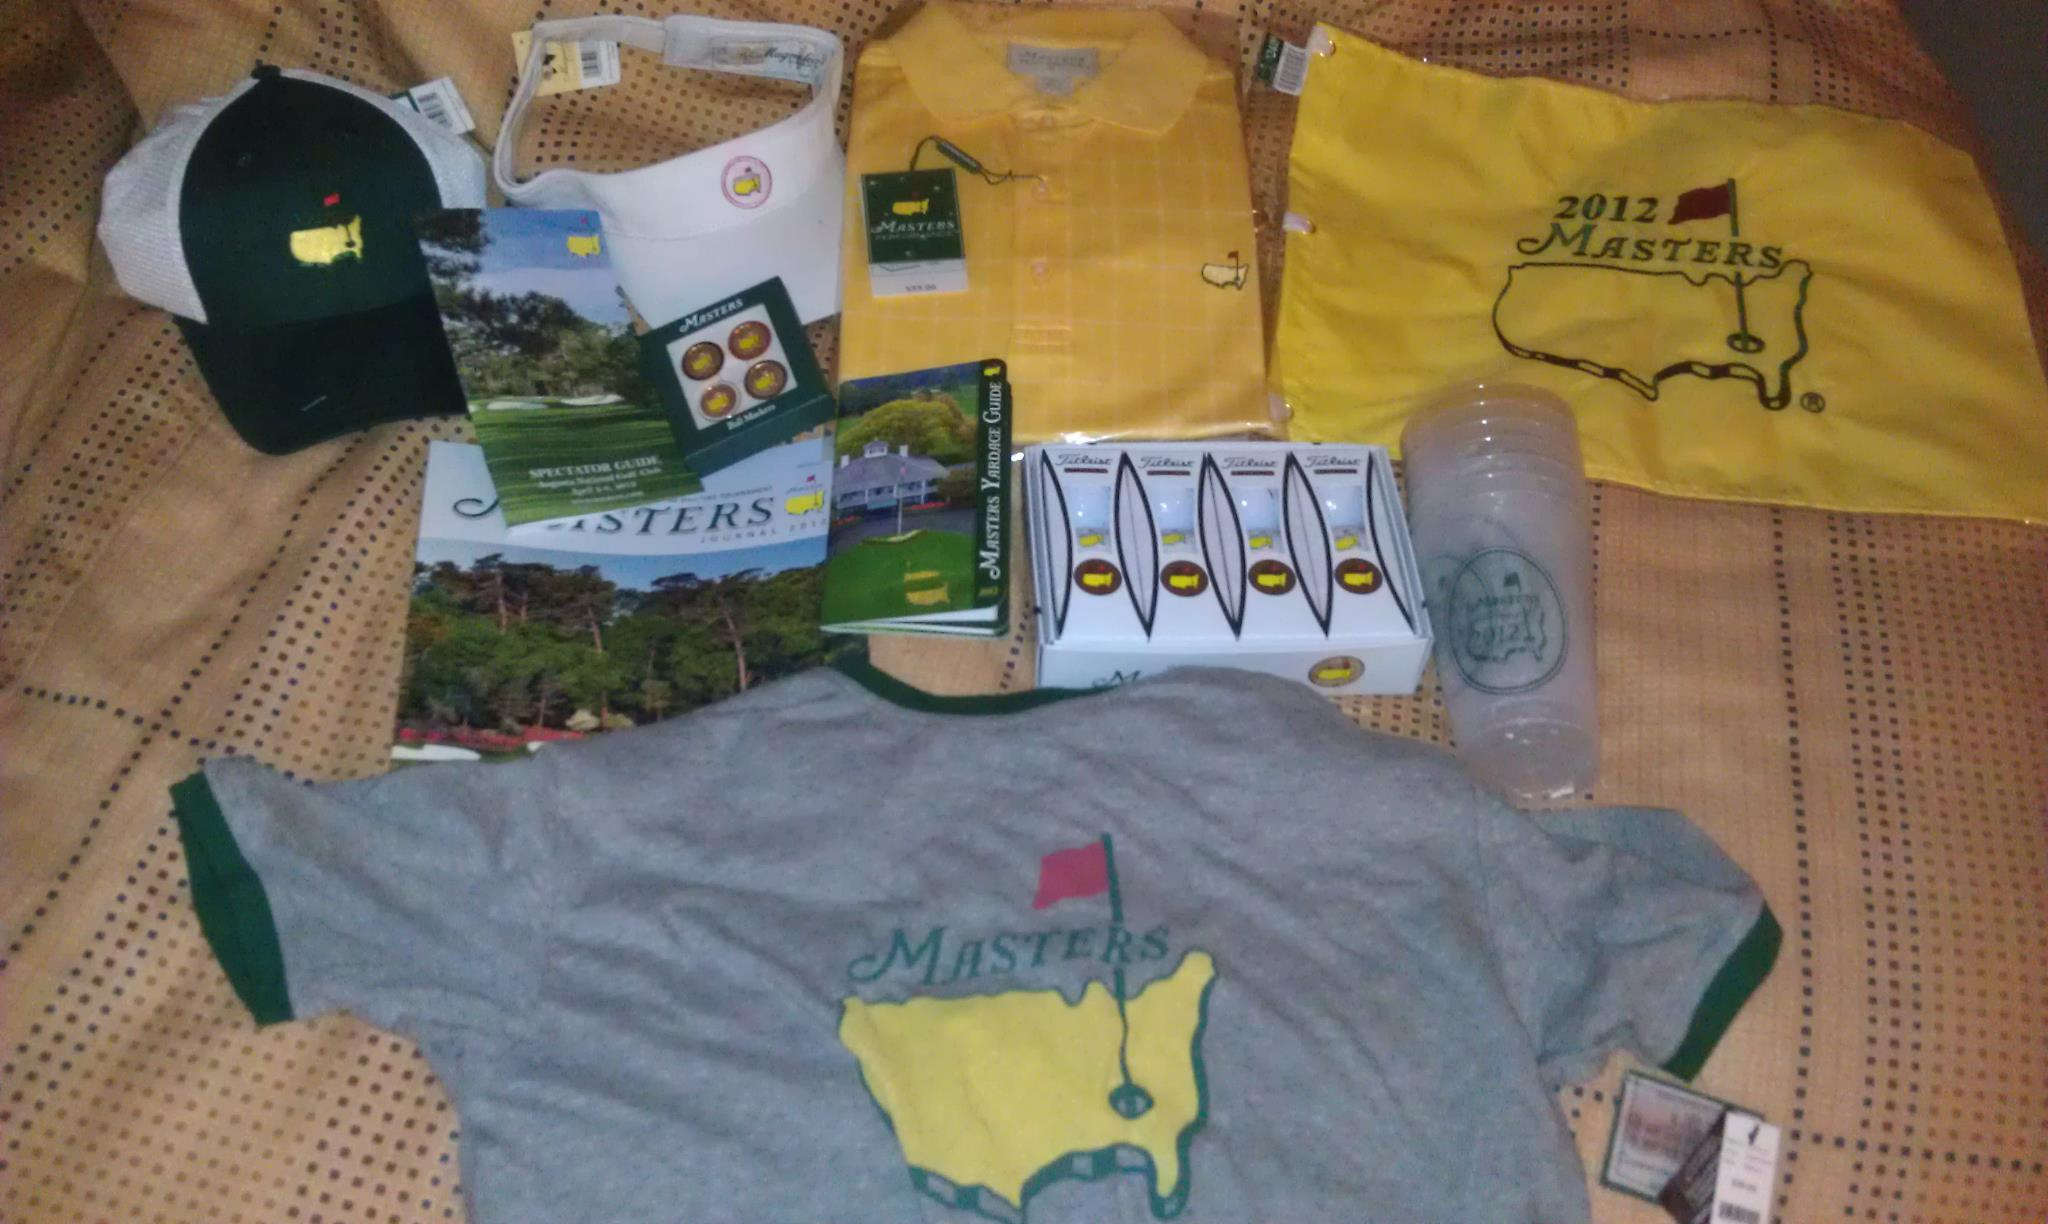 The Masters haul, Day 1. TFM.